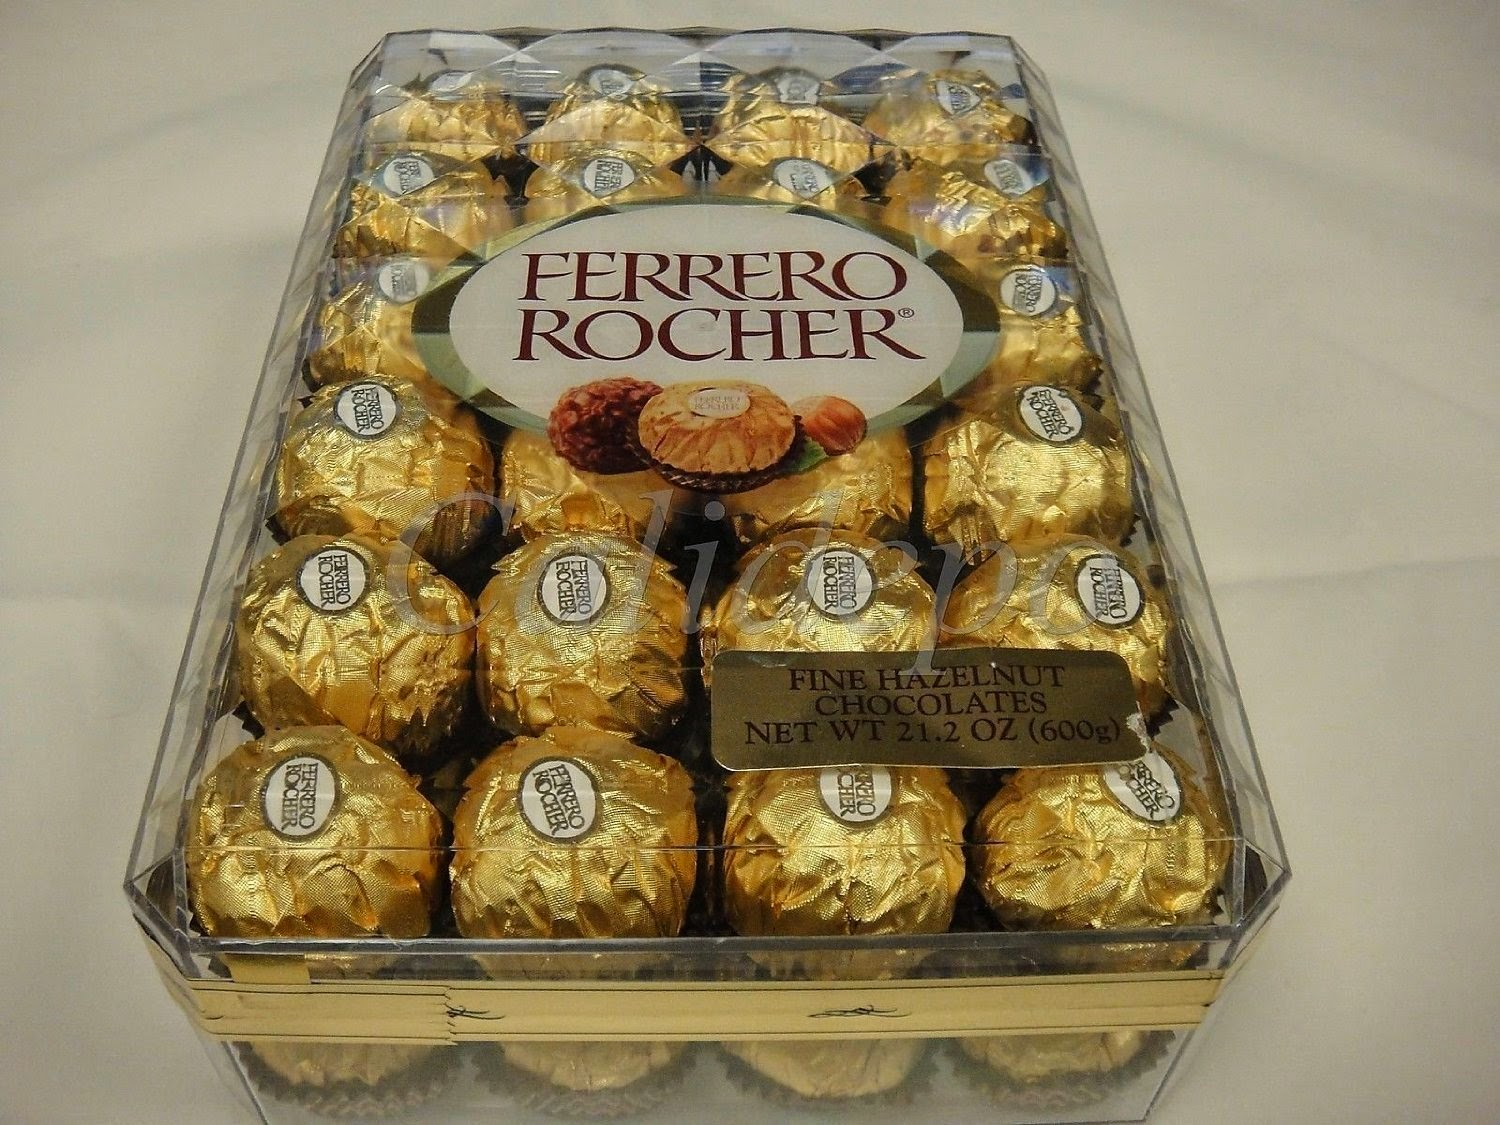 because ferrero rocher chocolates are a girls best friend the ferrero chocolates are very popular during valentines day because girls love them